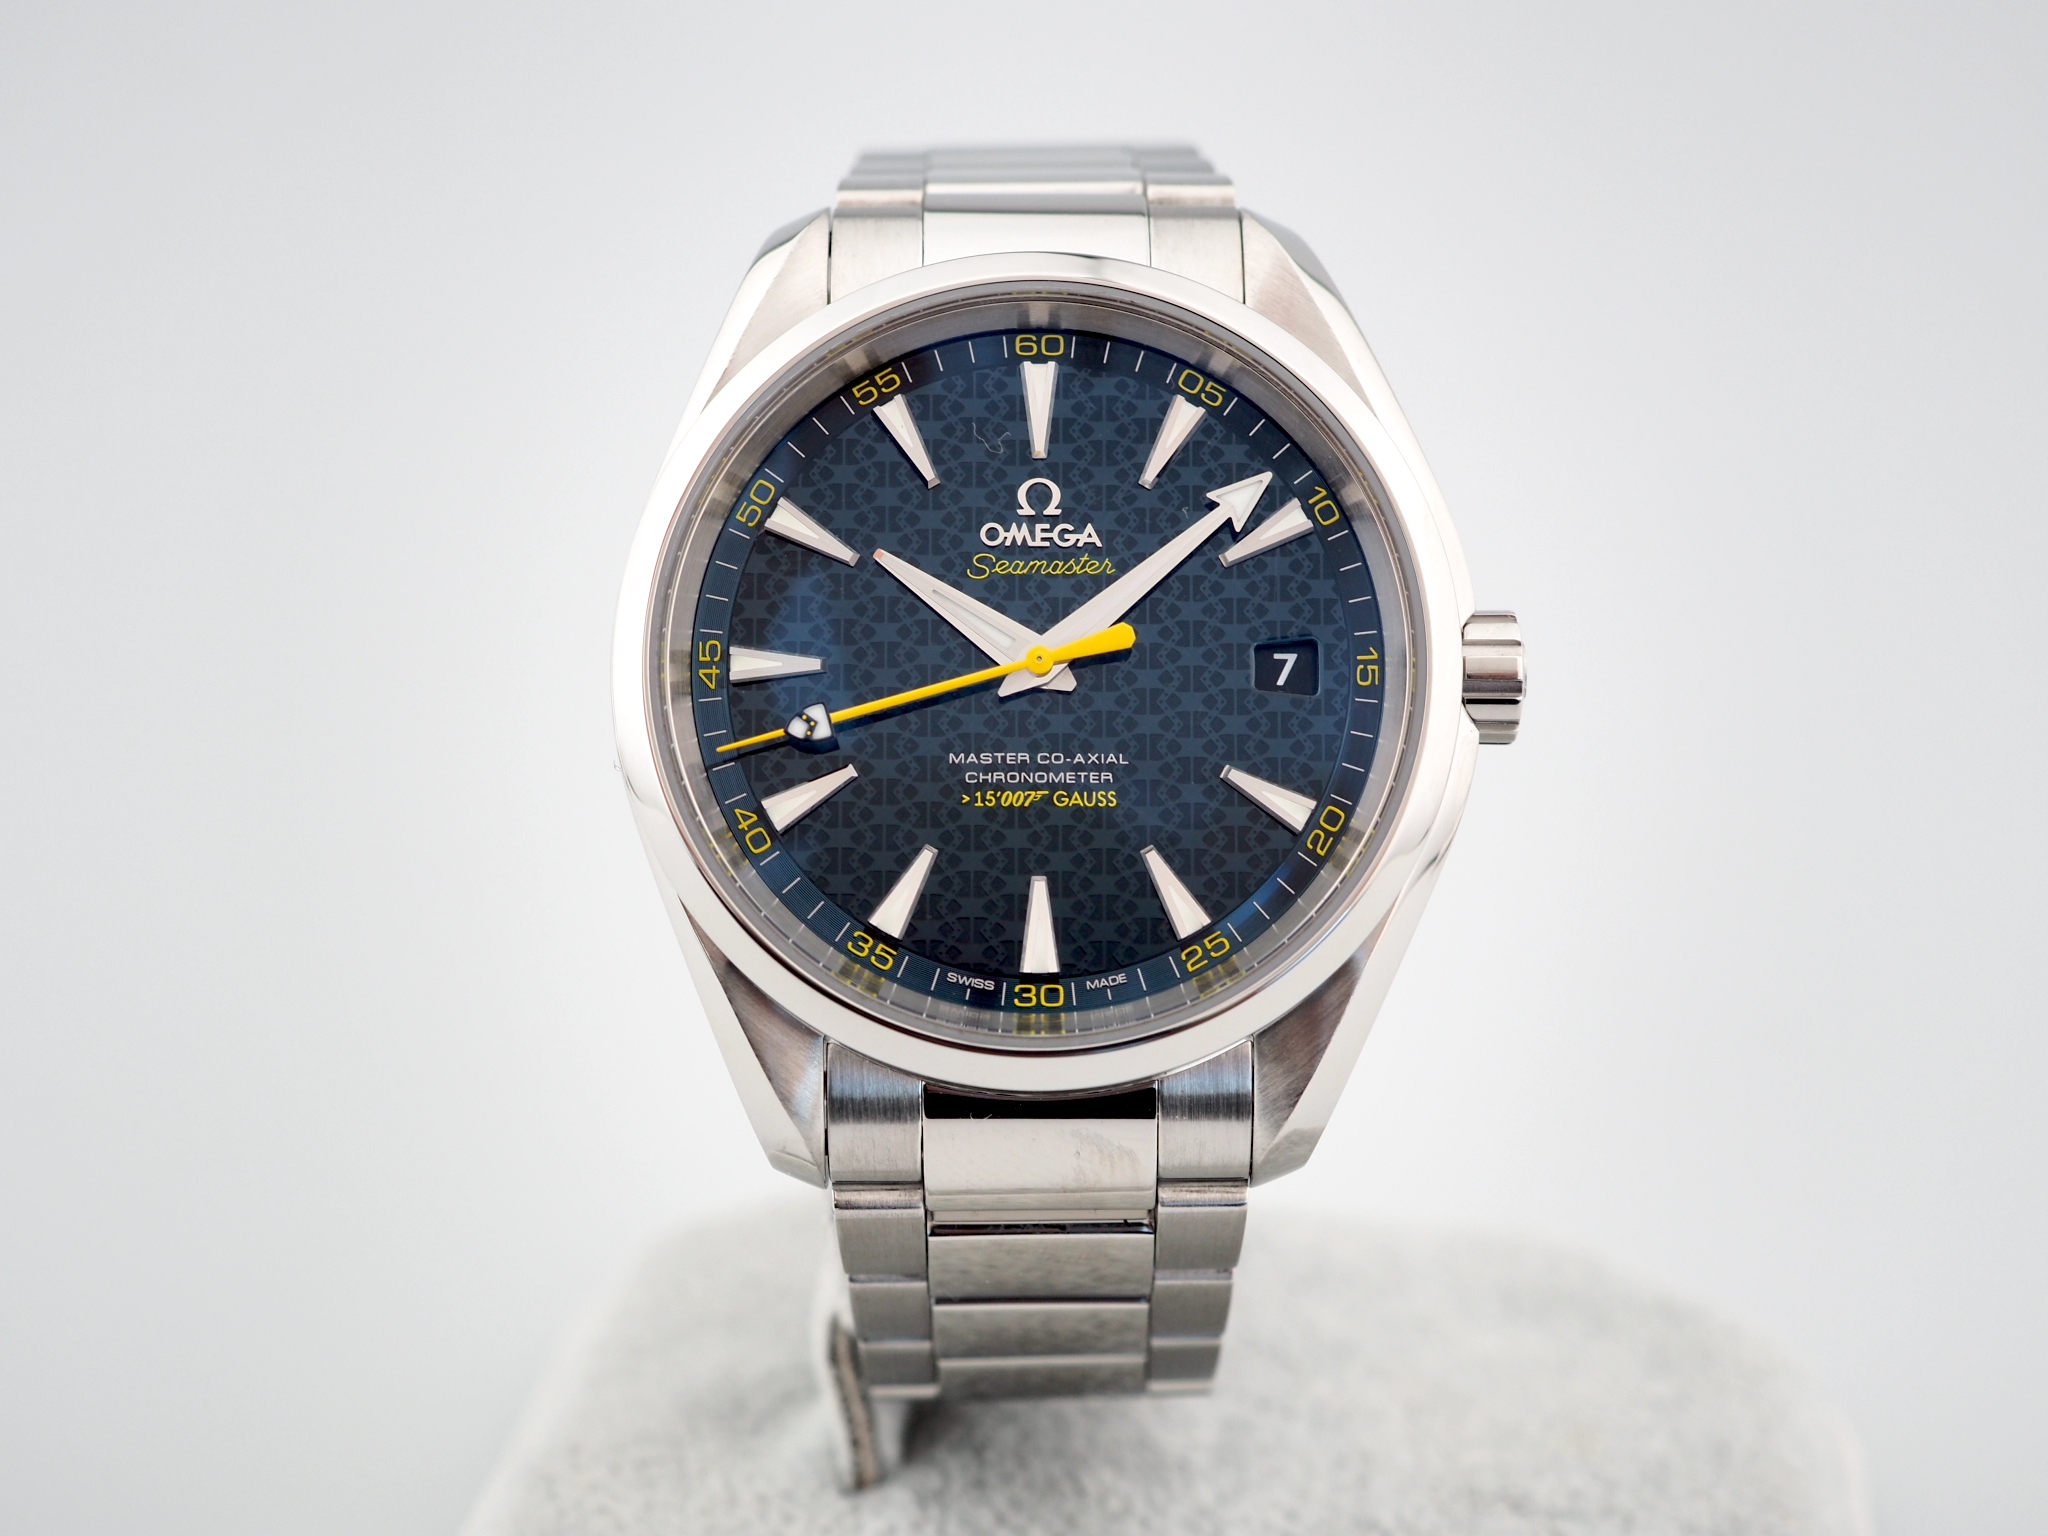 Omega Seamaster Aqua Terra James Bond 007 Spectre Limited